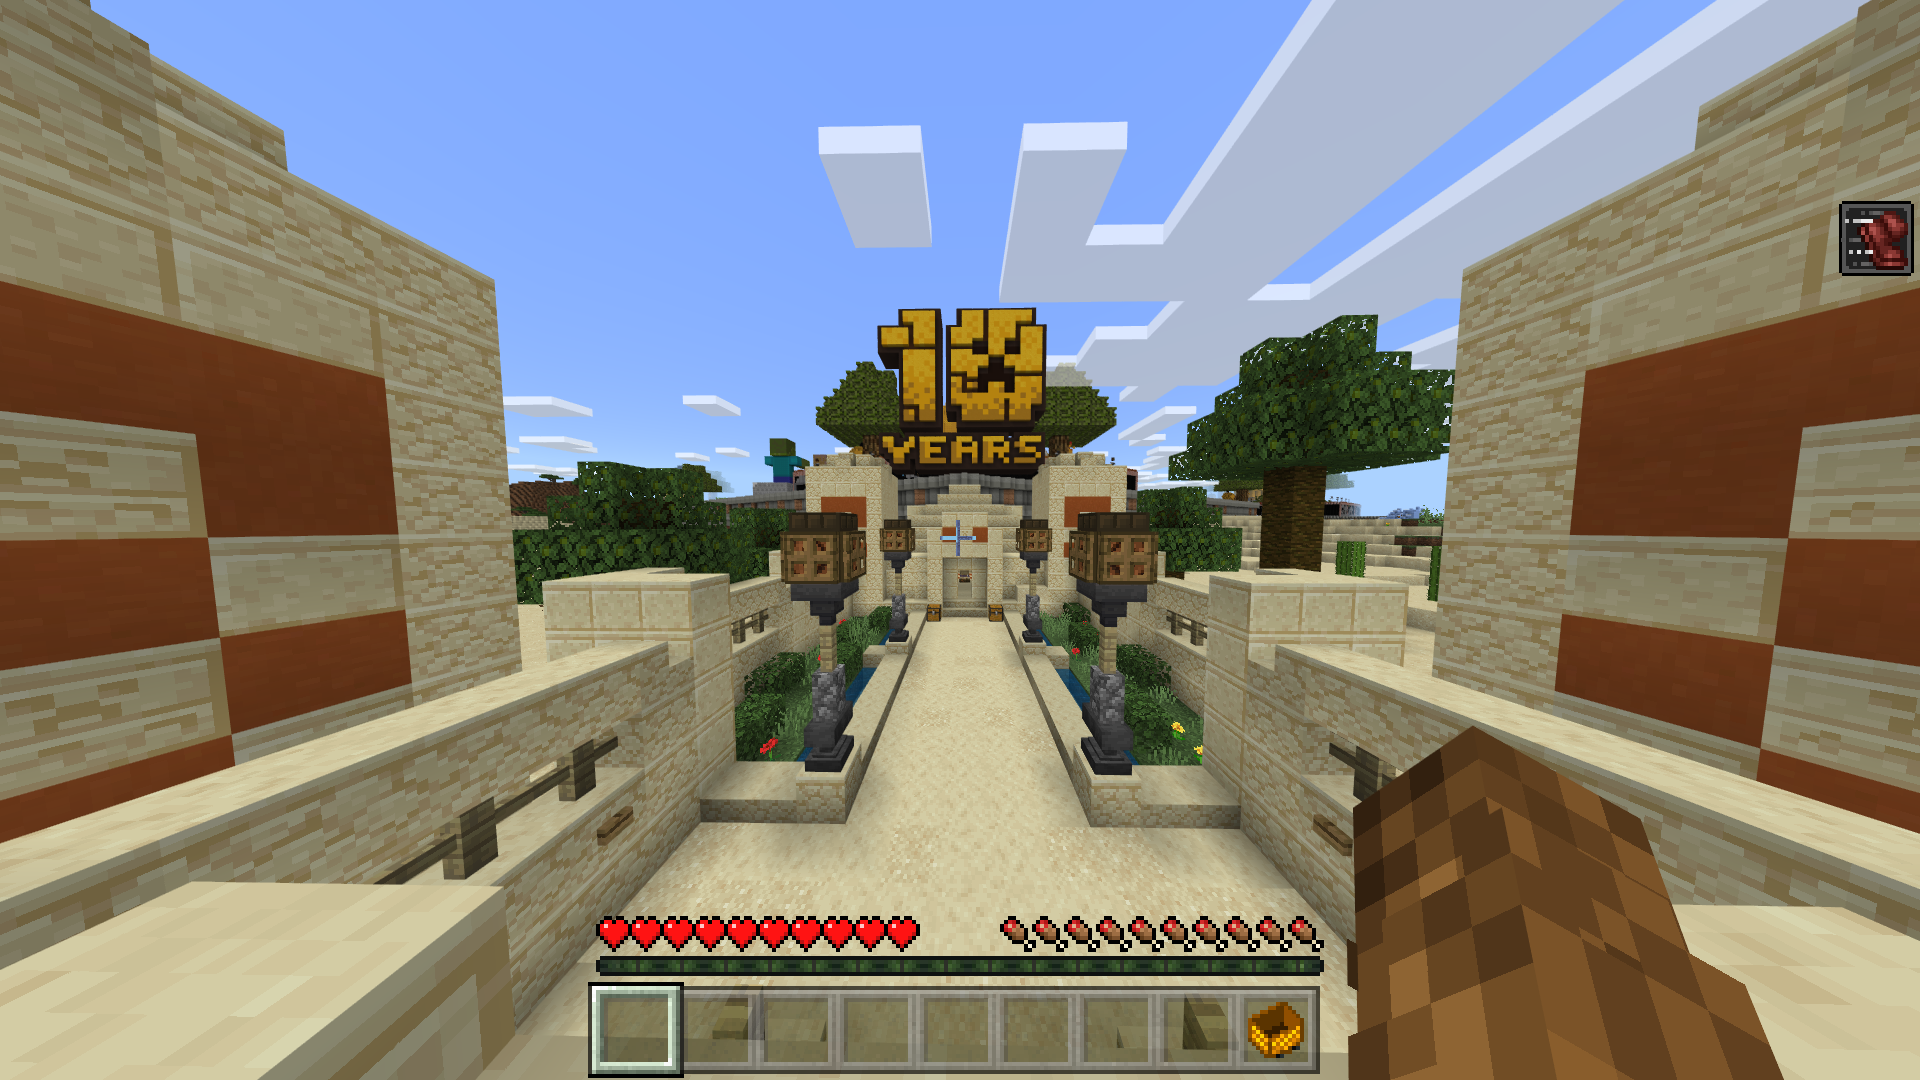 Minecraft's New 10th Anniversary Map Is Awesome And Hides A Few Secrets